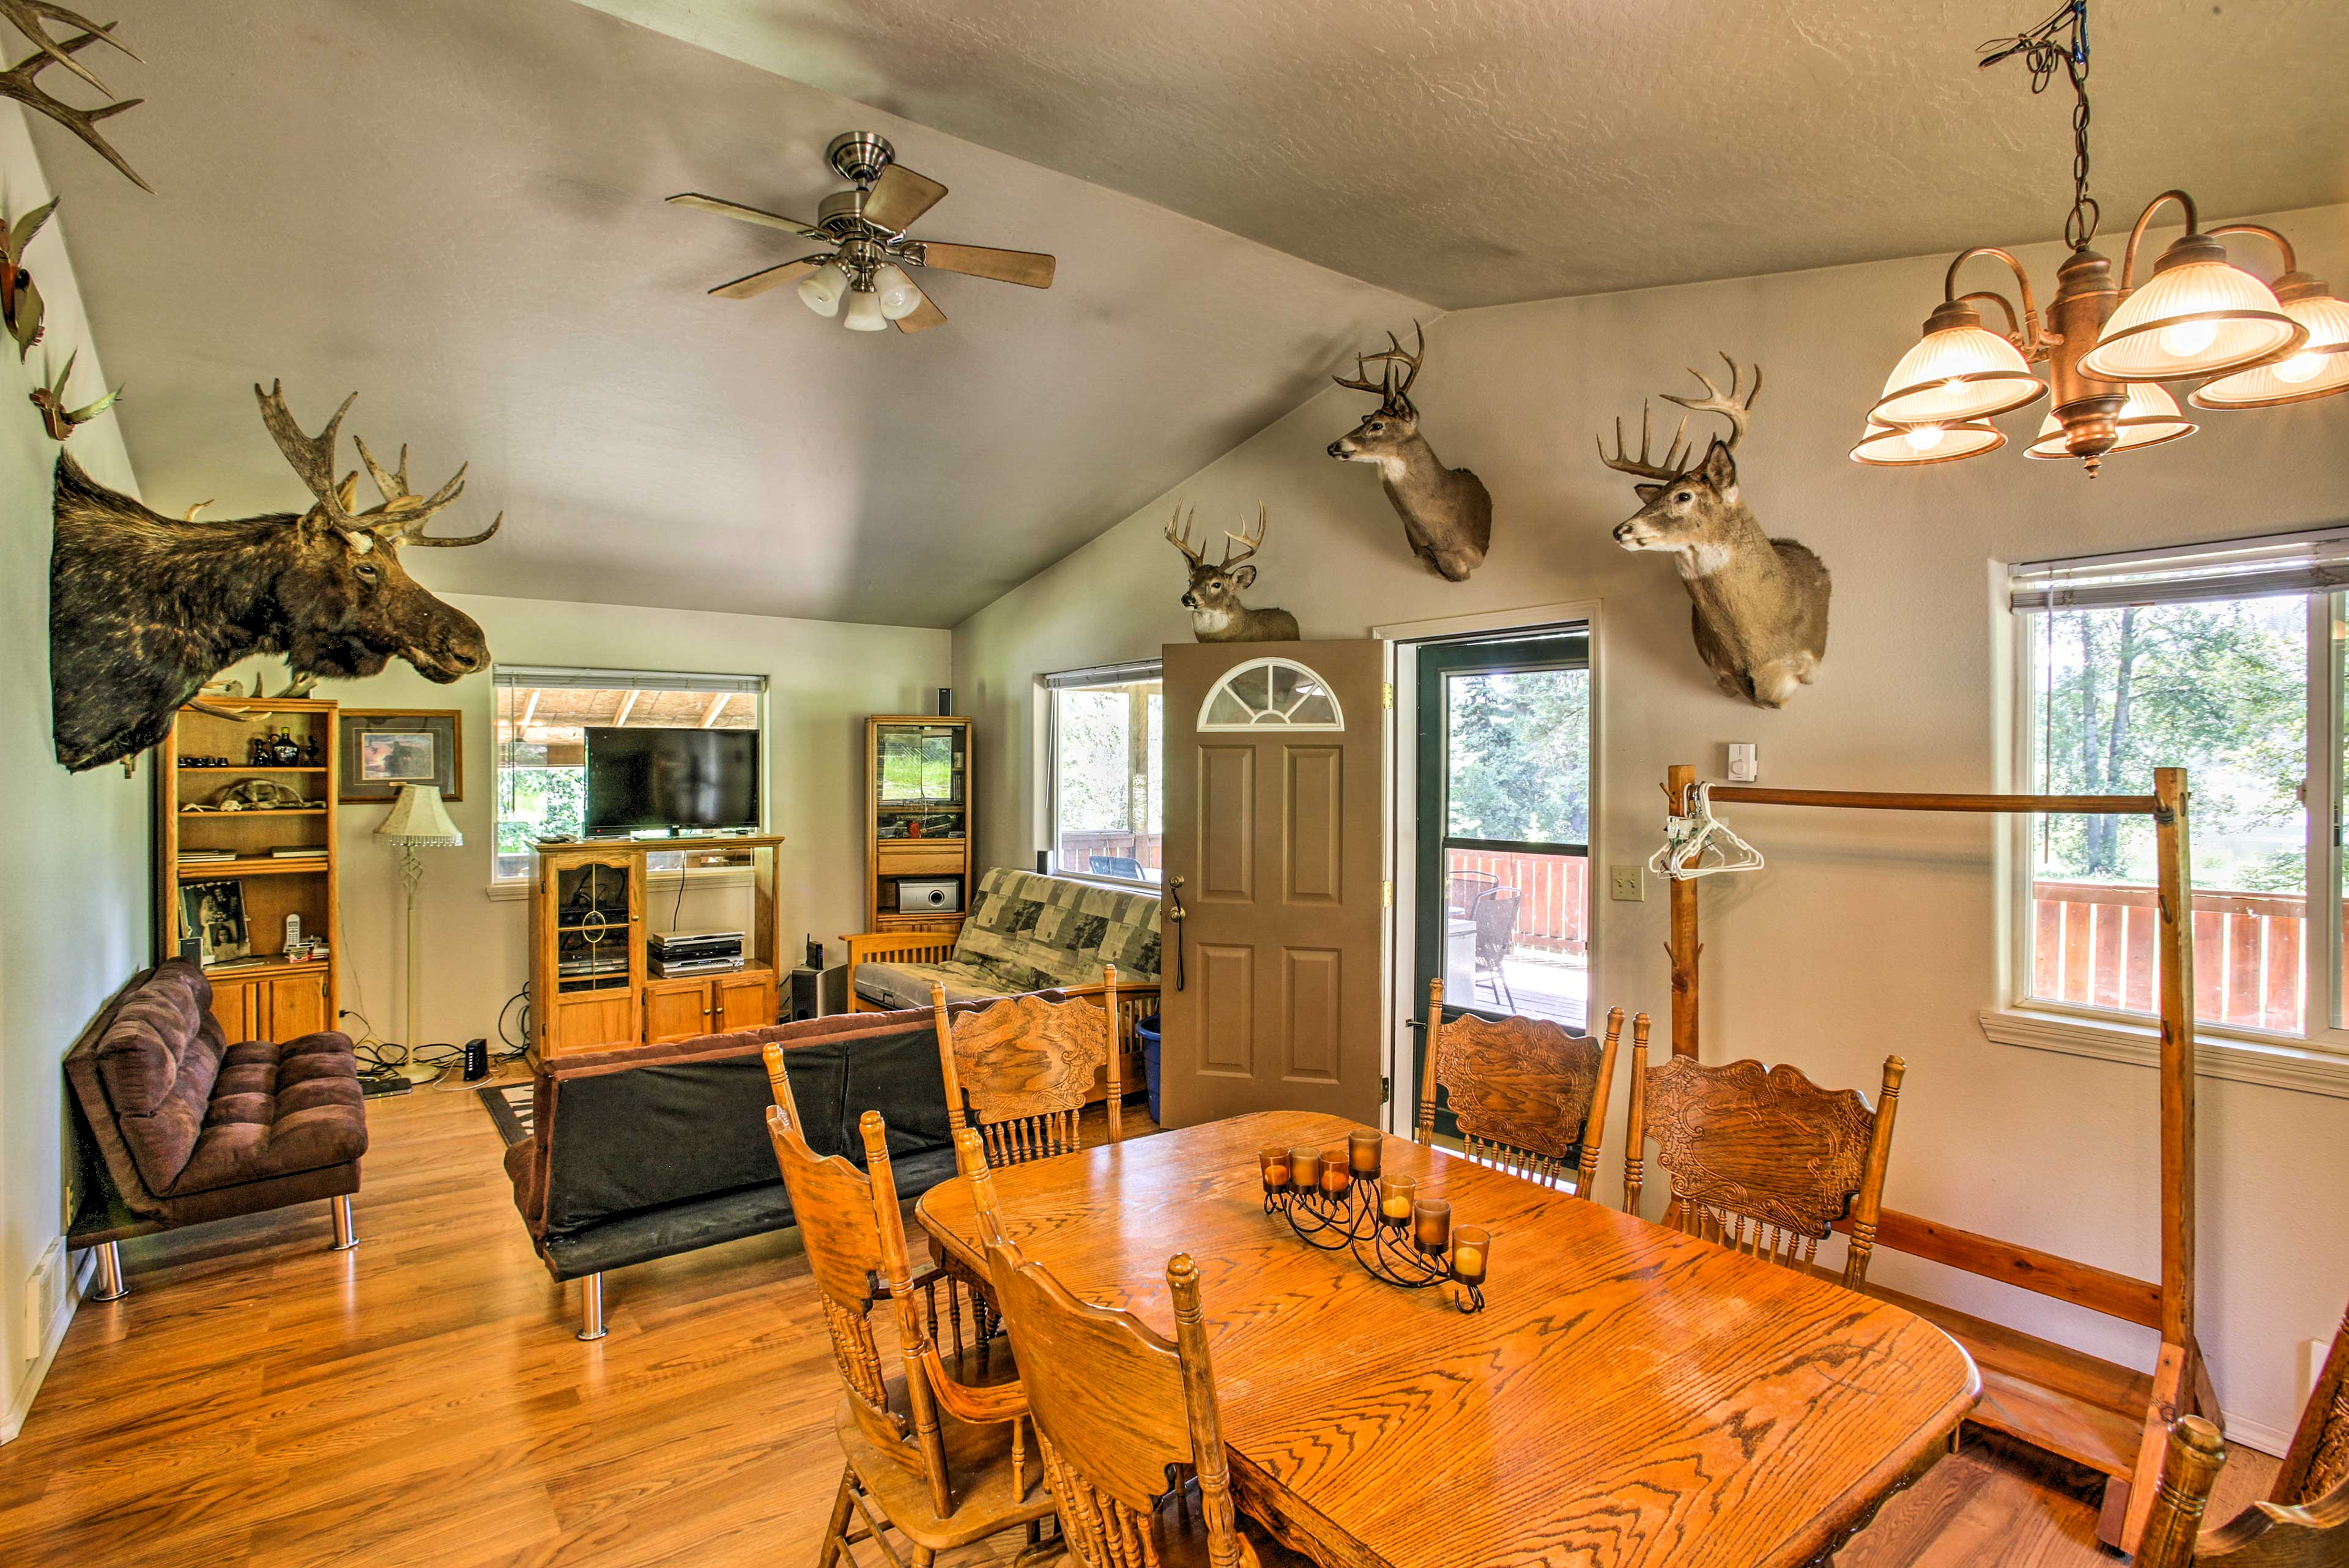 St. Maries Vacation Rental   Home   2BR   1BA   1,150 Sq Ft